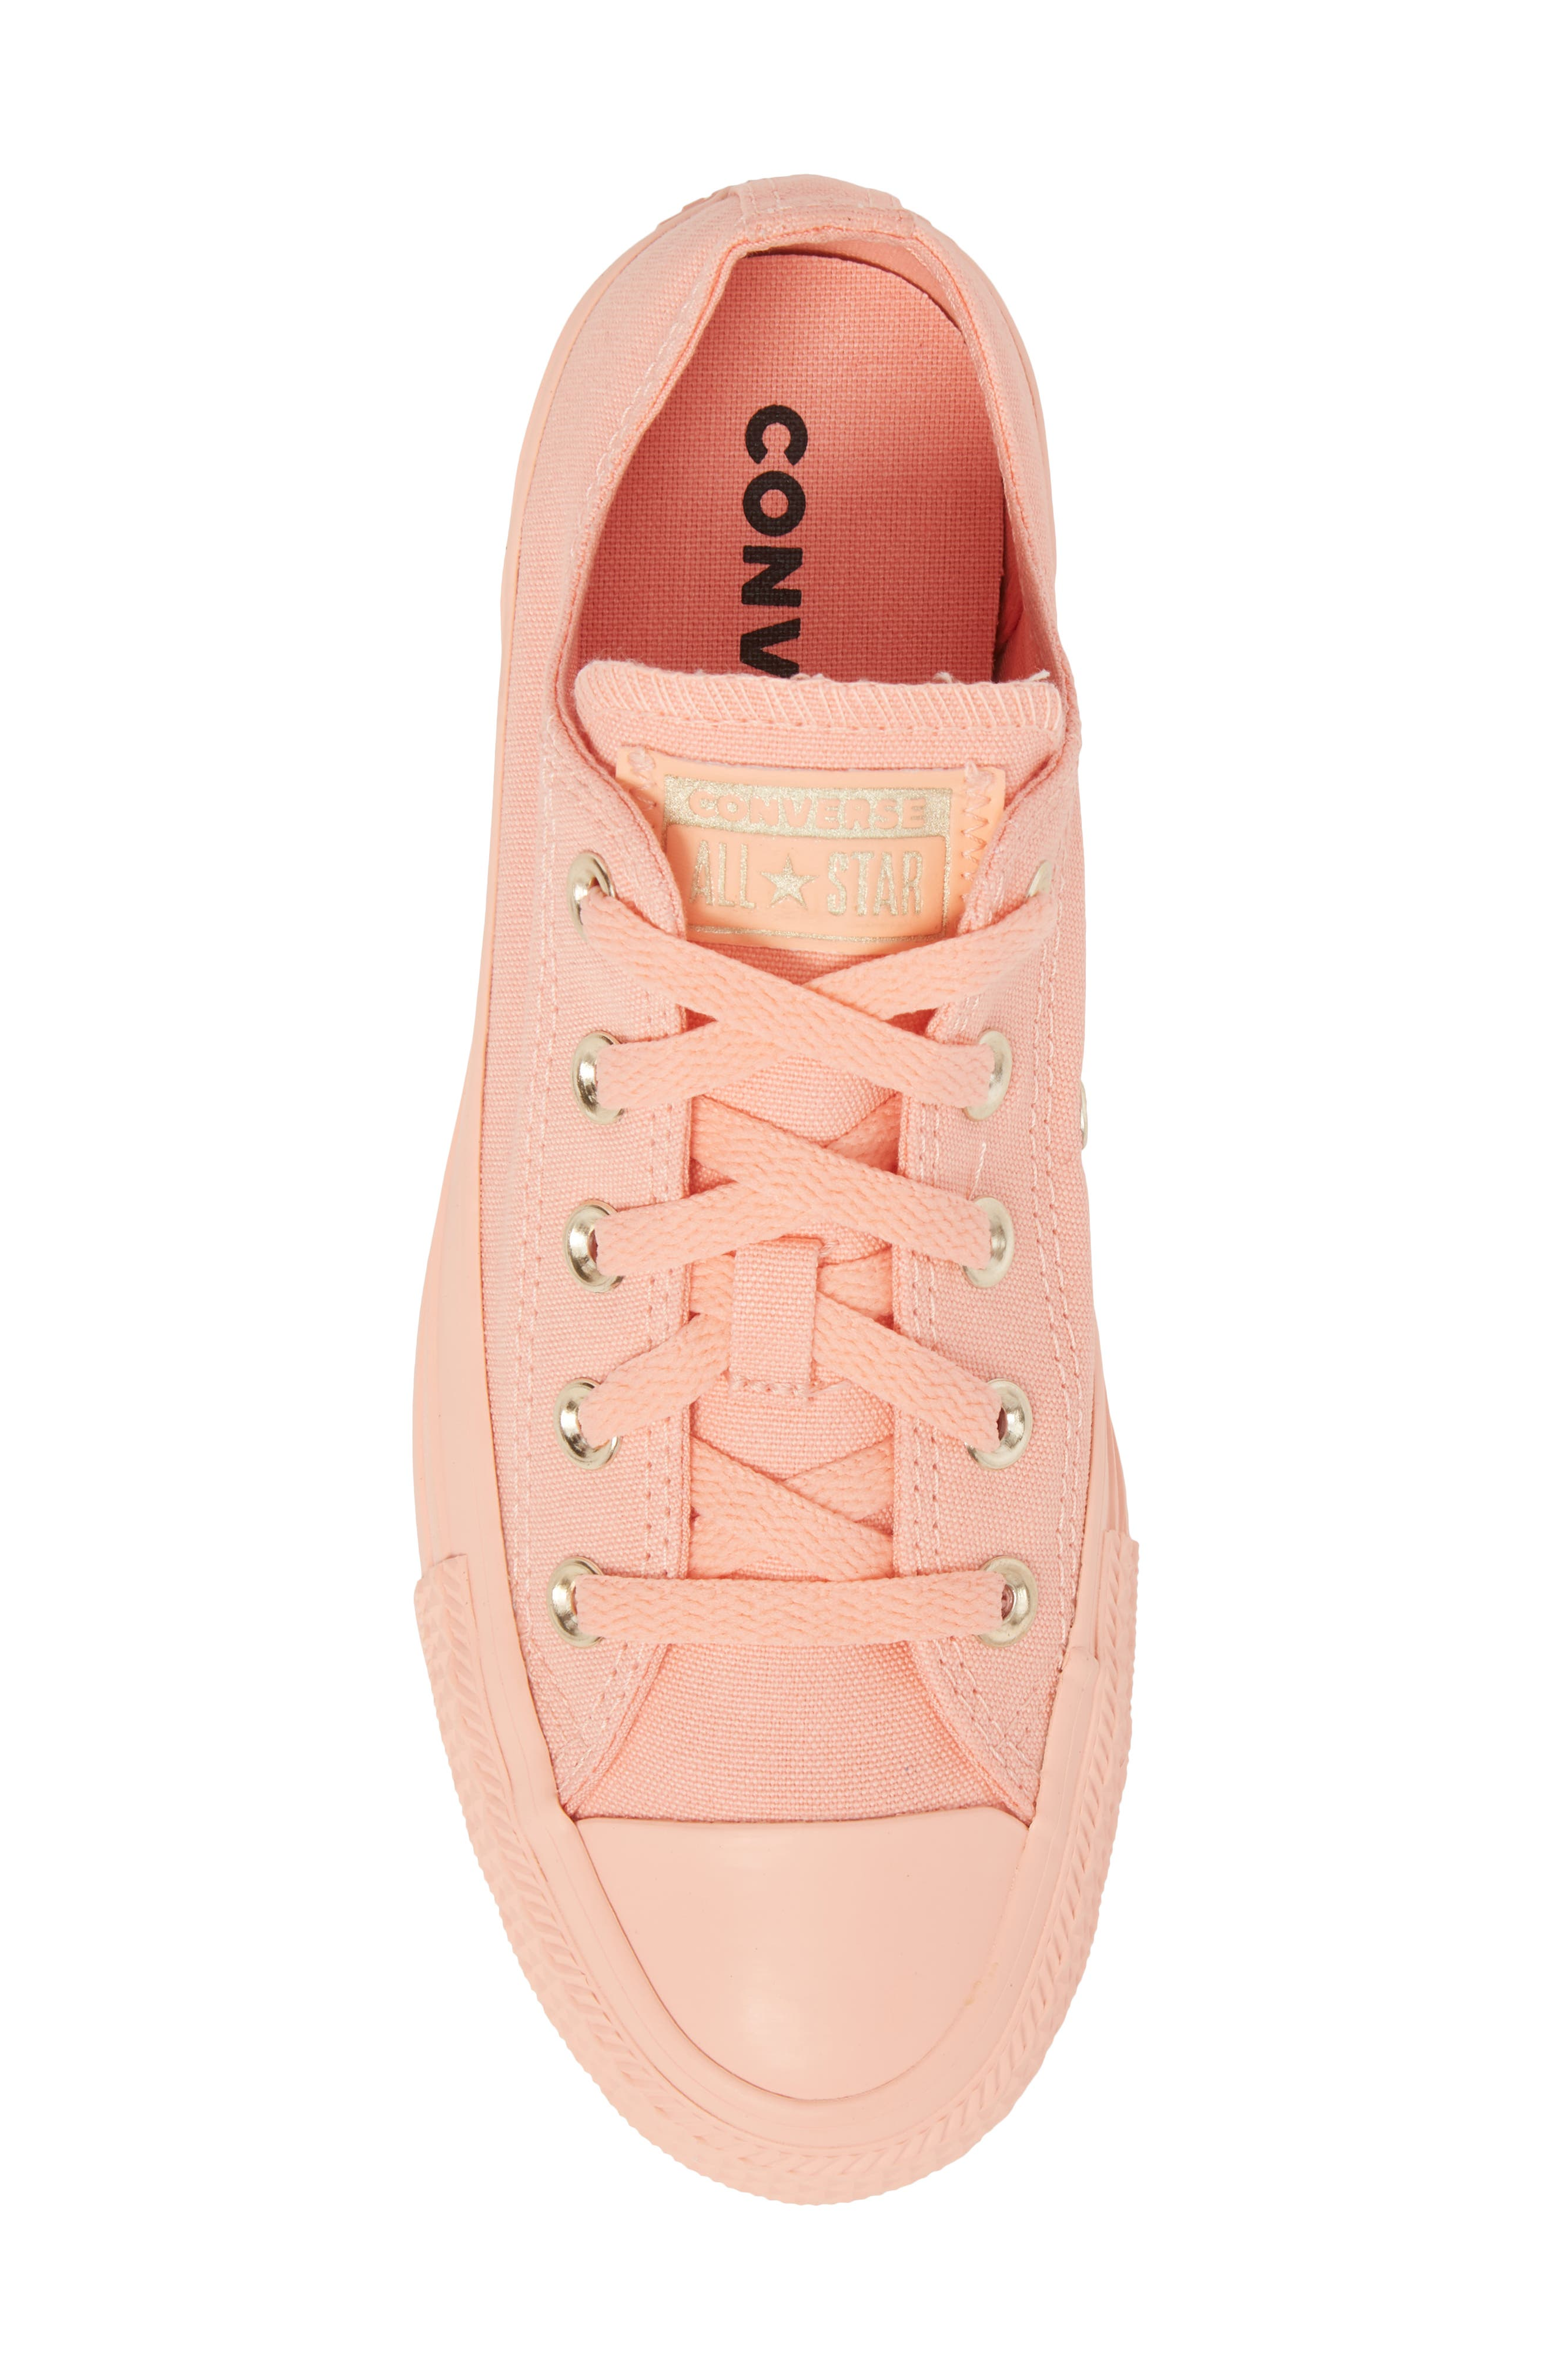 Chuck Taylor<sup>®</sup> All Star<sup>®</sup> Seasonal Color Sneaker,                             Alternate thumbnail 5, color,                             Pale Coral